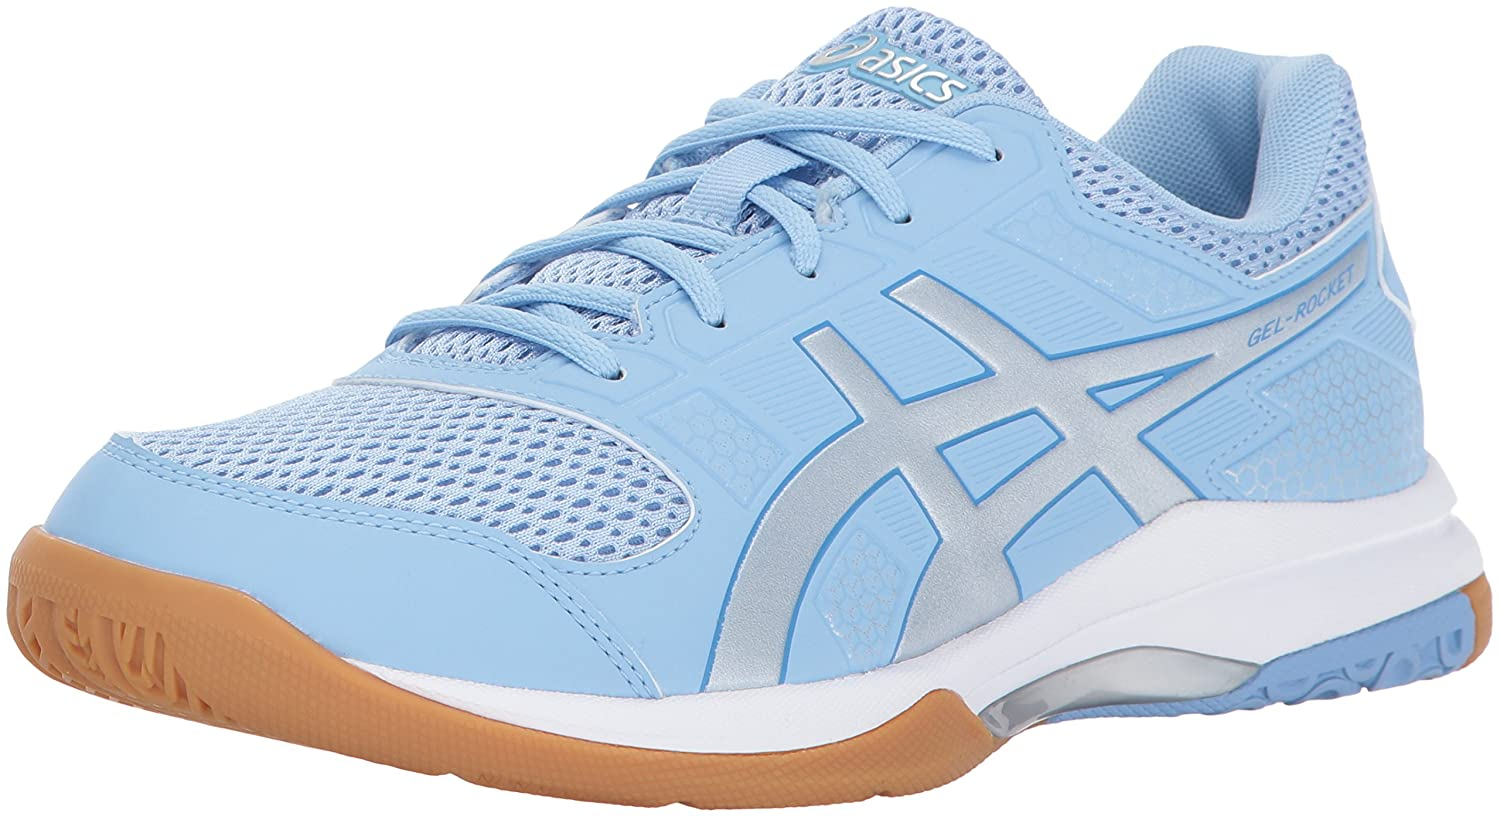 Airy bluee Silver White ASICS Women's Gel-Rocket 8